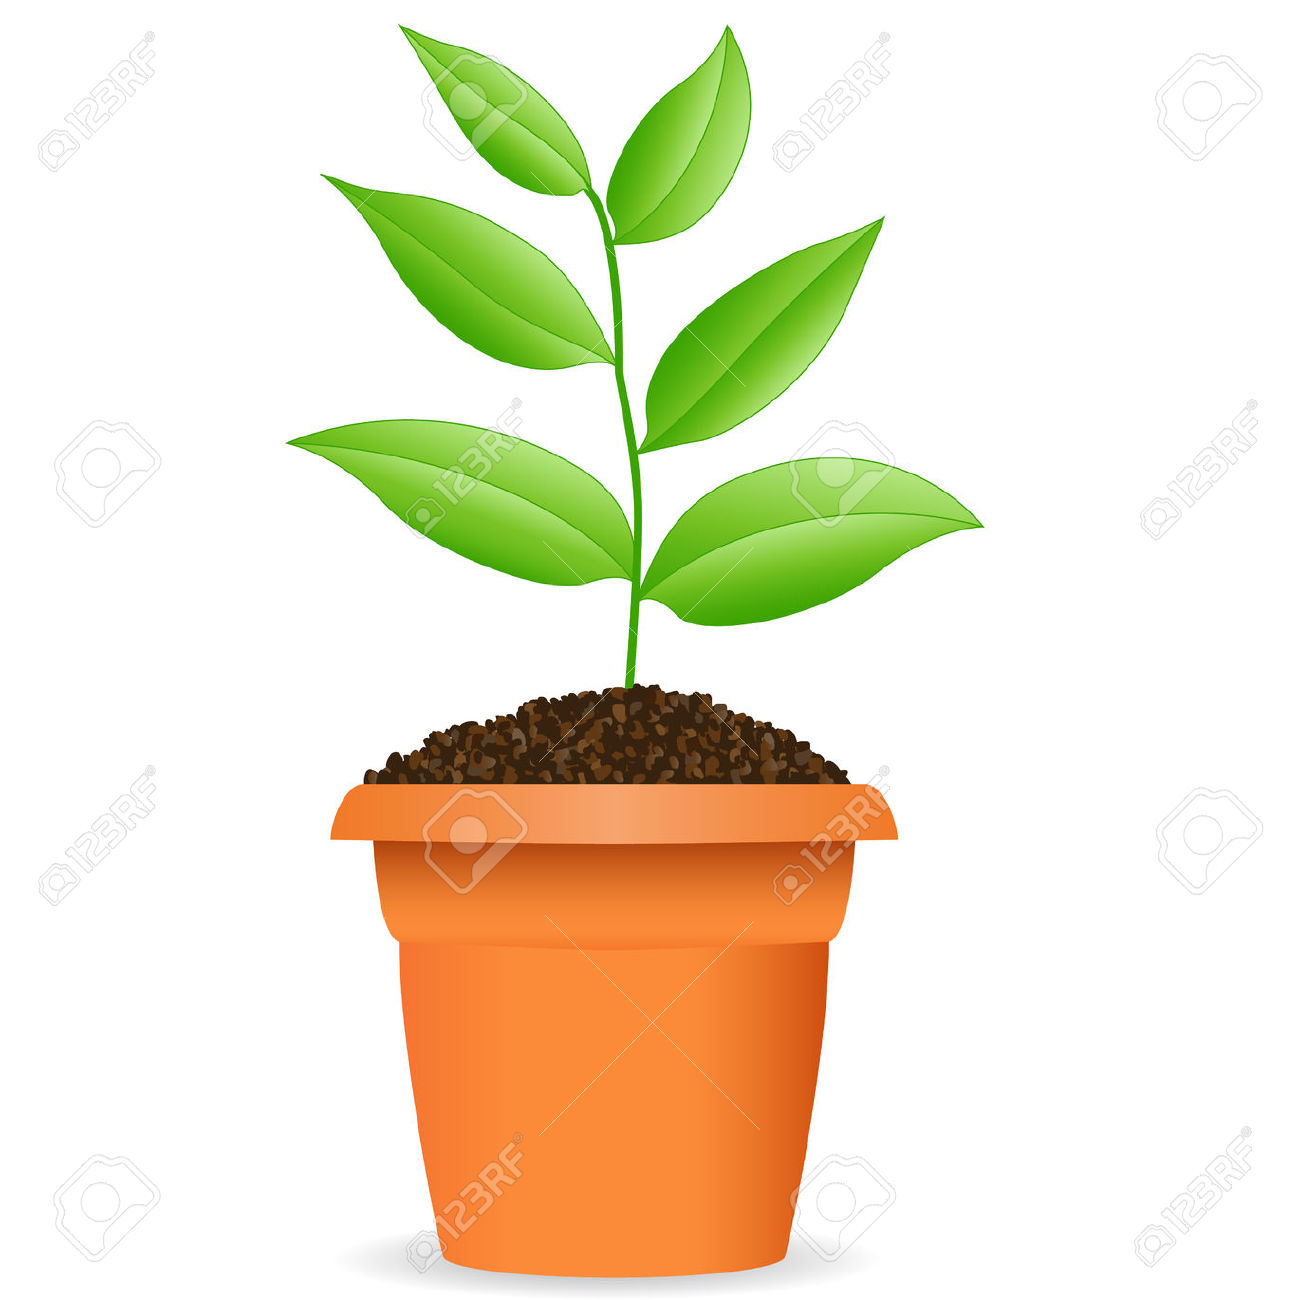 Plant in a pot clipart.